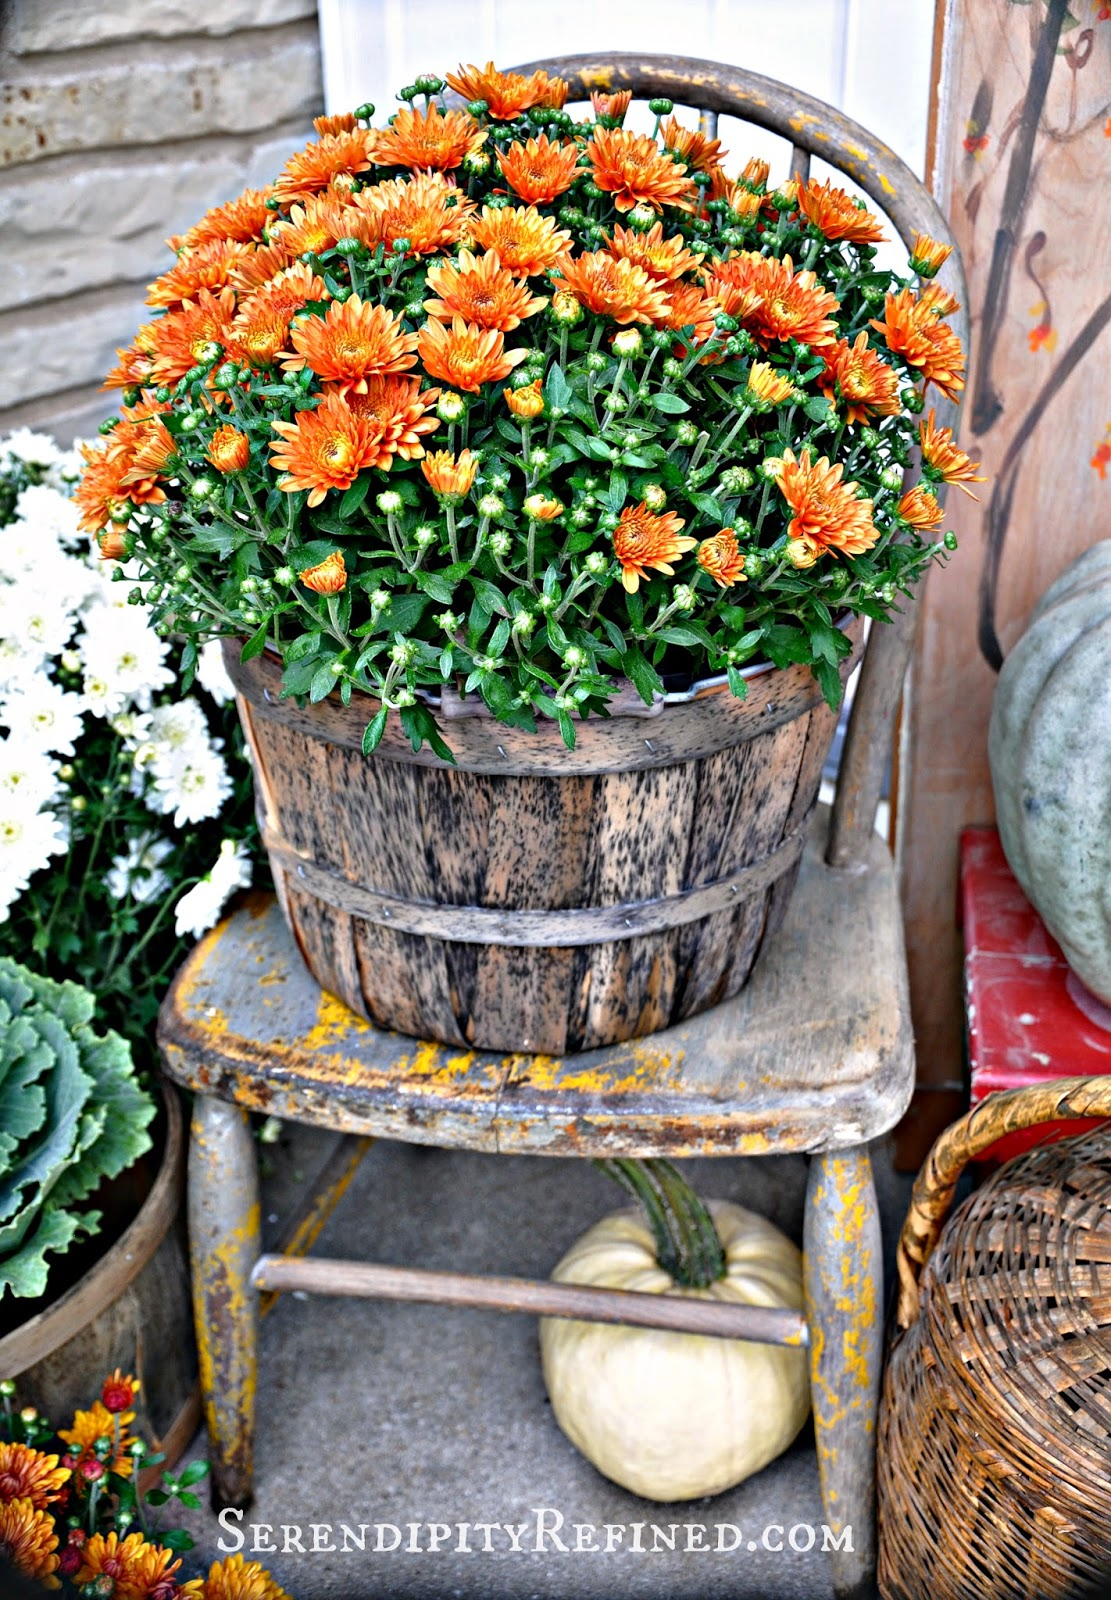 Decorating Around Harvest Gold Bathroom: Serendipity Refined Blog: Fall Harvest Porch Decor With